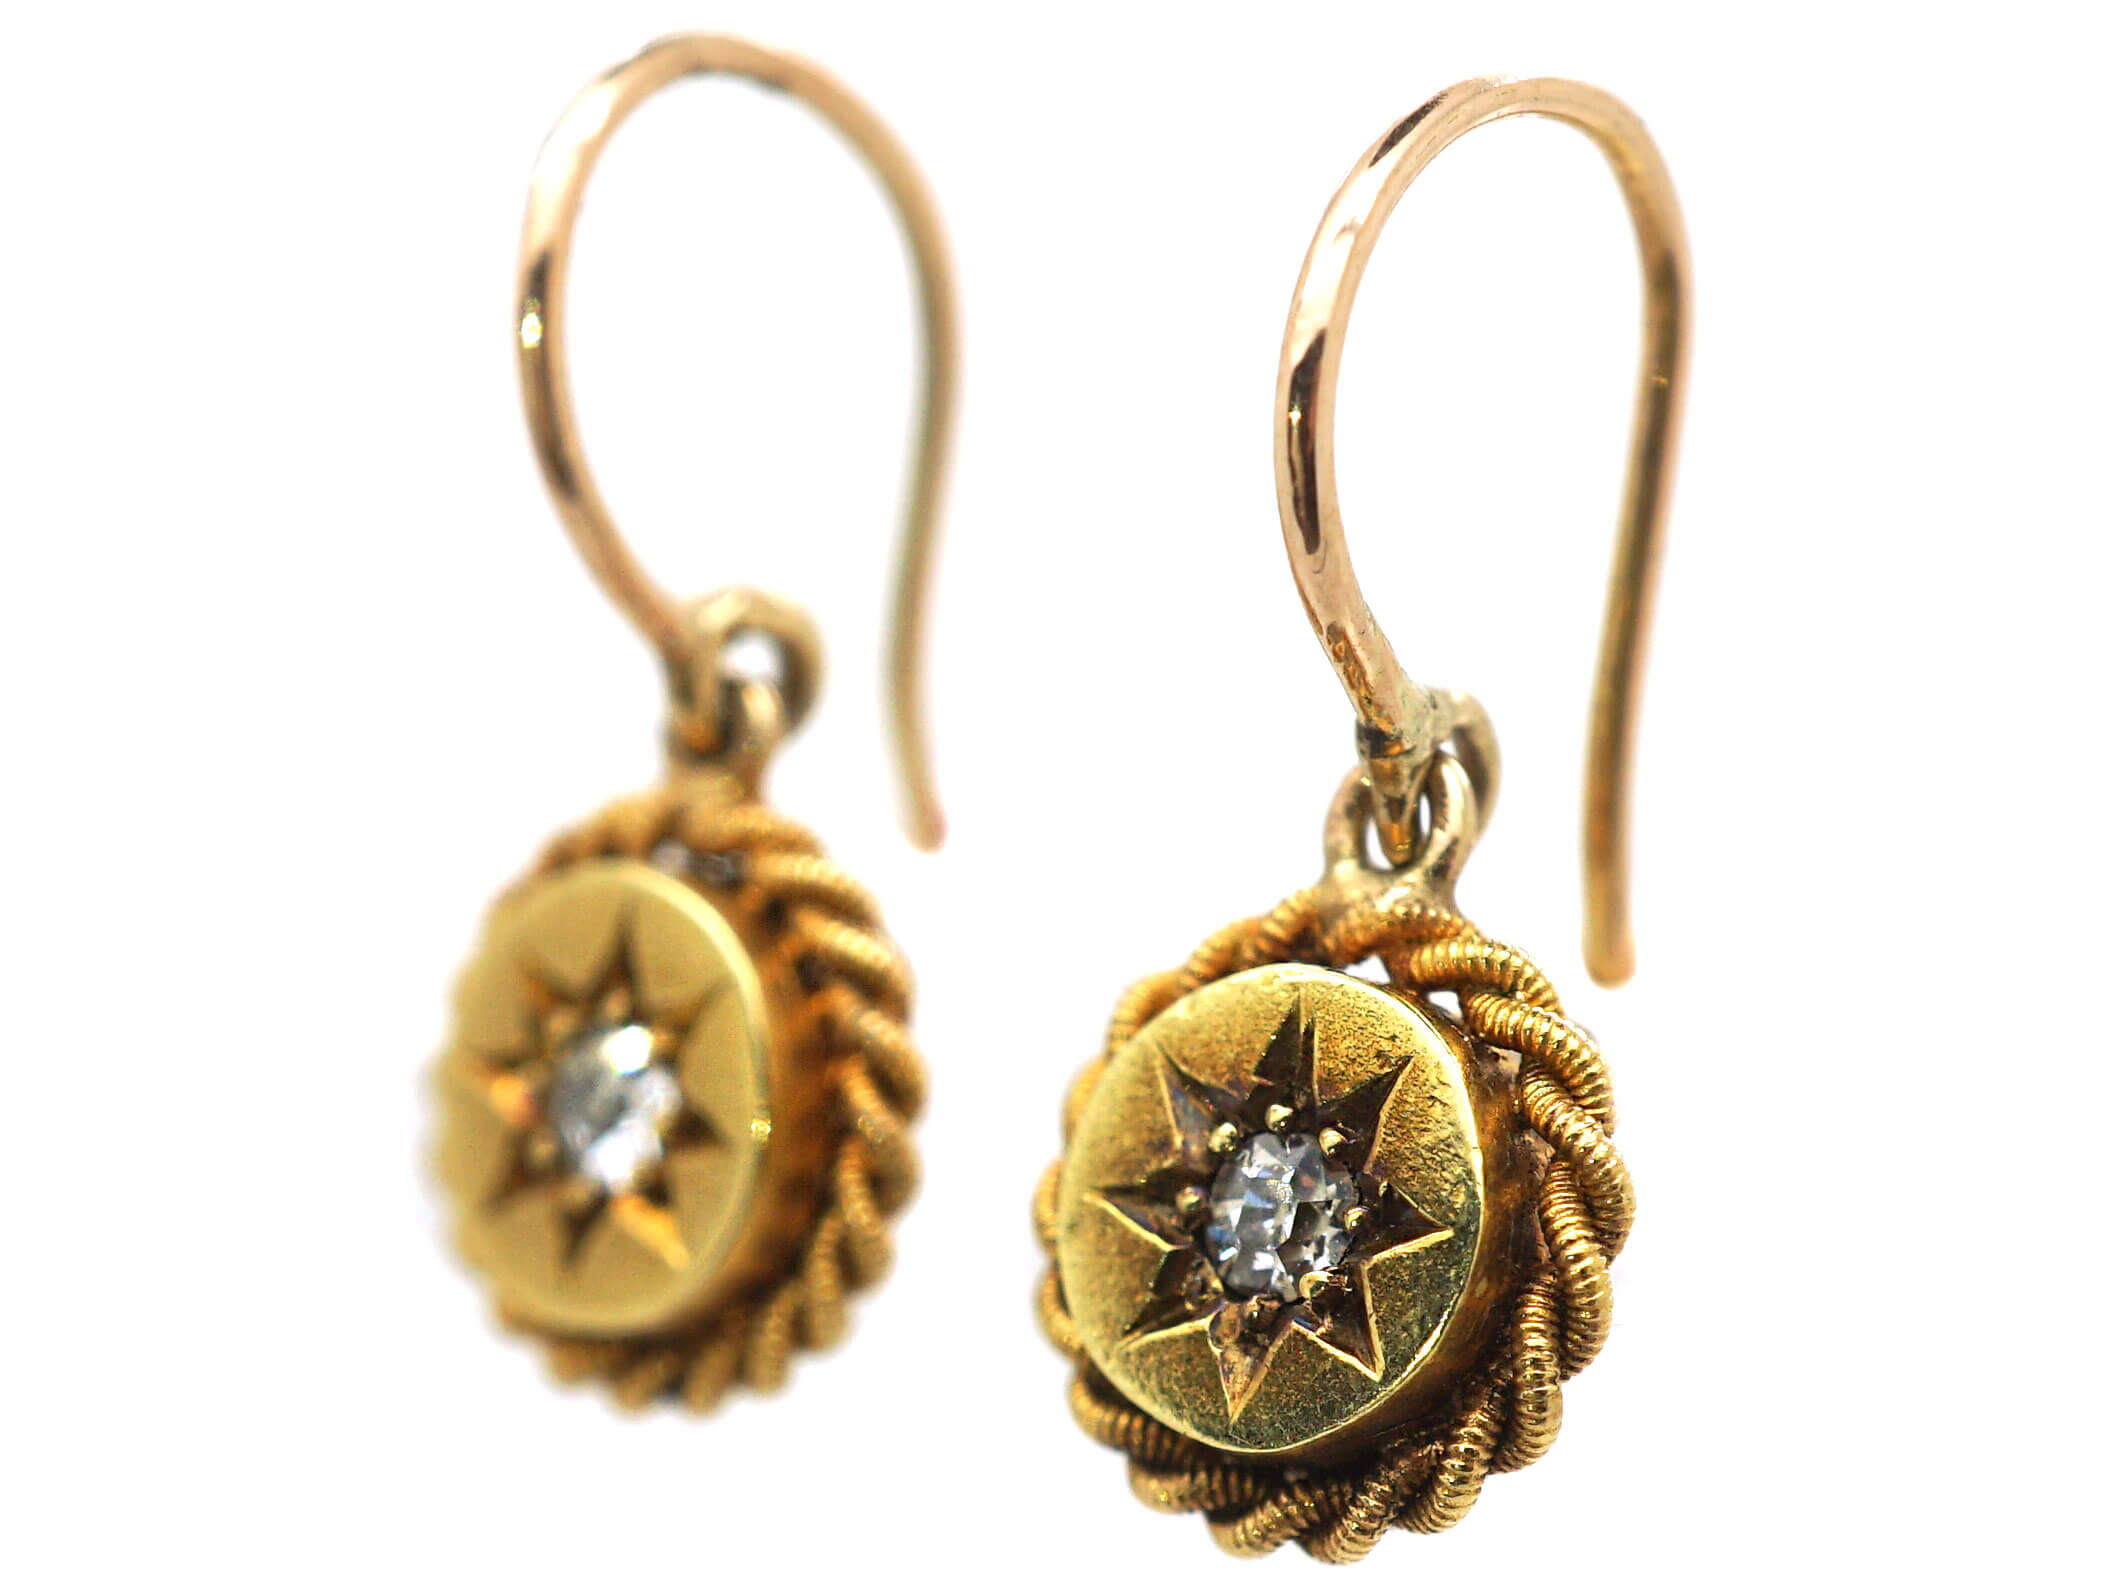 Victorian 15ct Gold Round Drop Earrings set with Diamonds